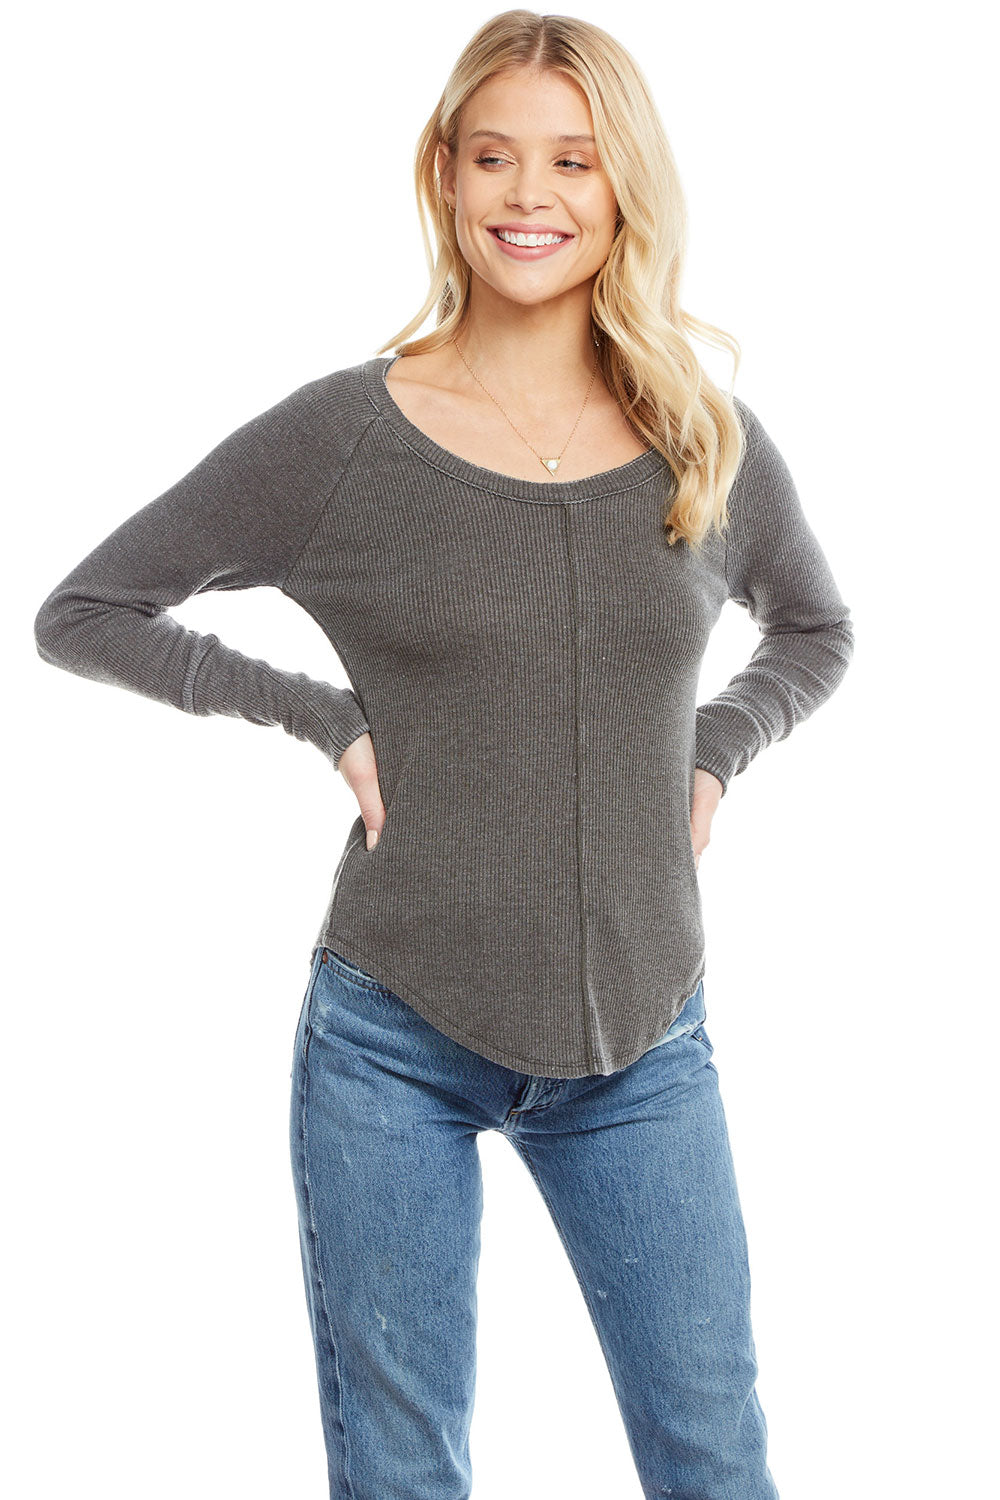 Cozy Rib Long Sleeve Seamed Shirttail Raglan Cuffed Tee, WOMENS, chaserbrand.com,chaser clothing,chaser apparel,chaser los angeles